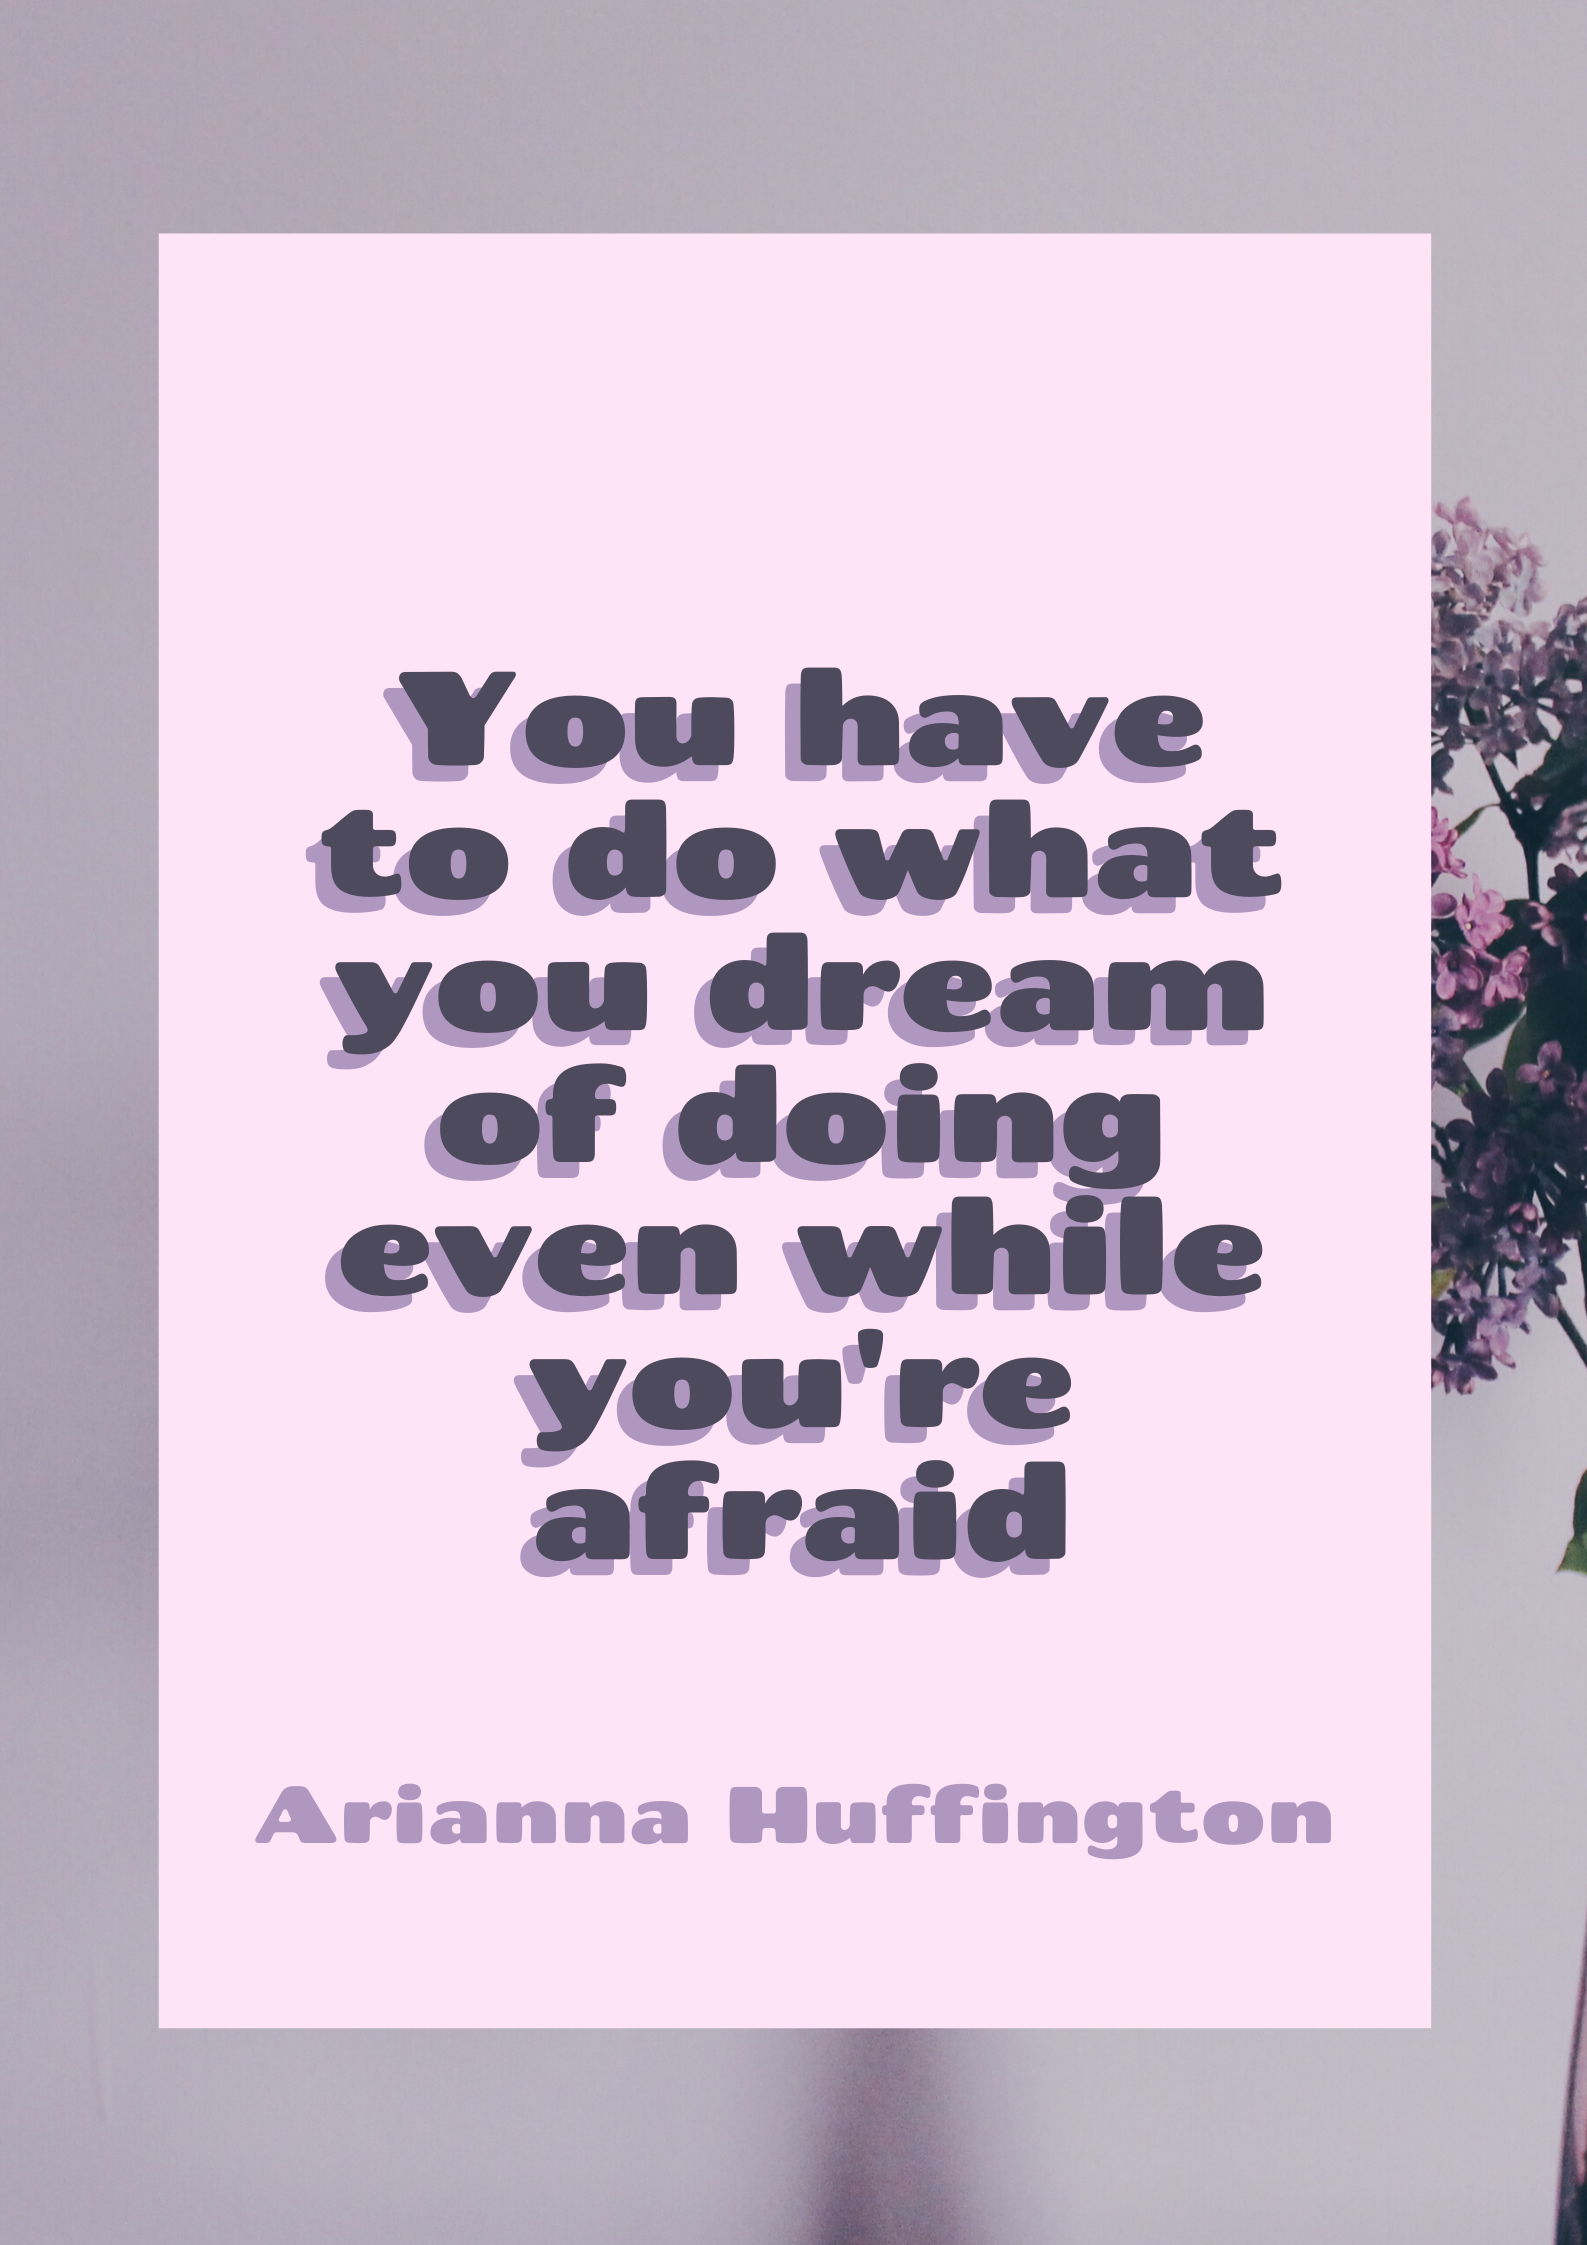 motivational quotes inspirational women arianna huffington